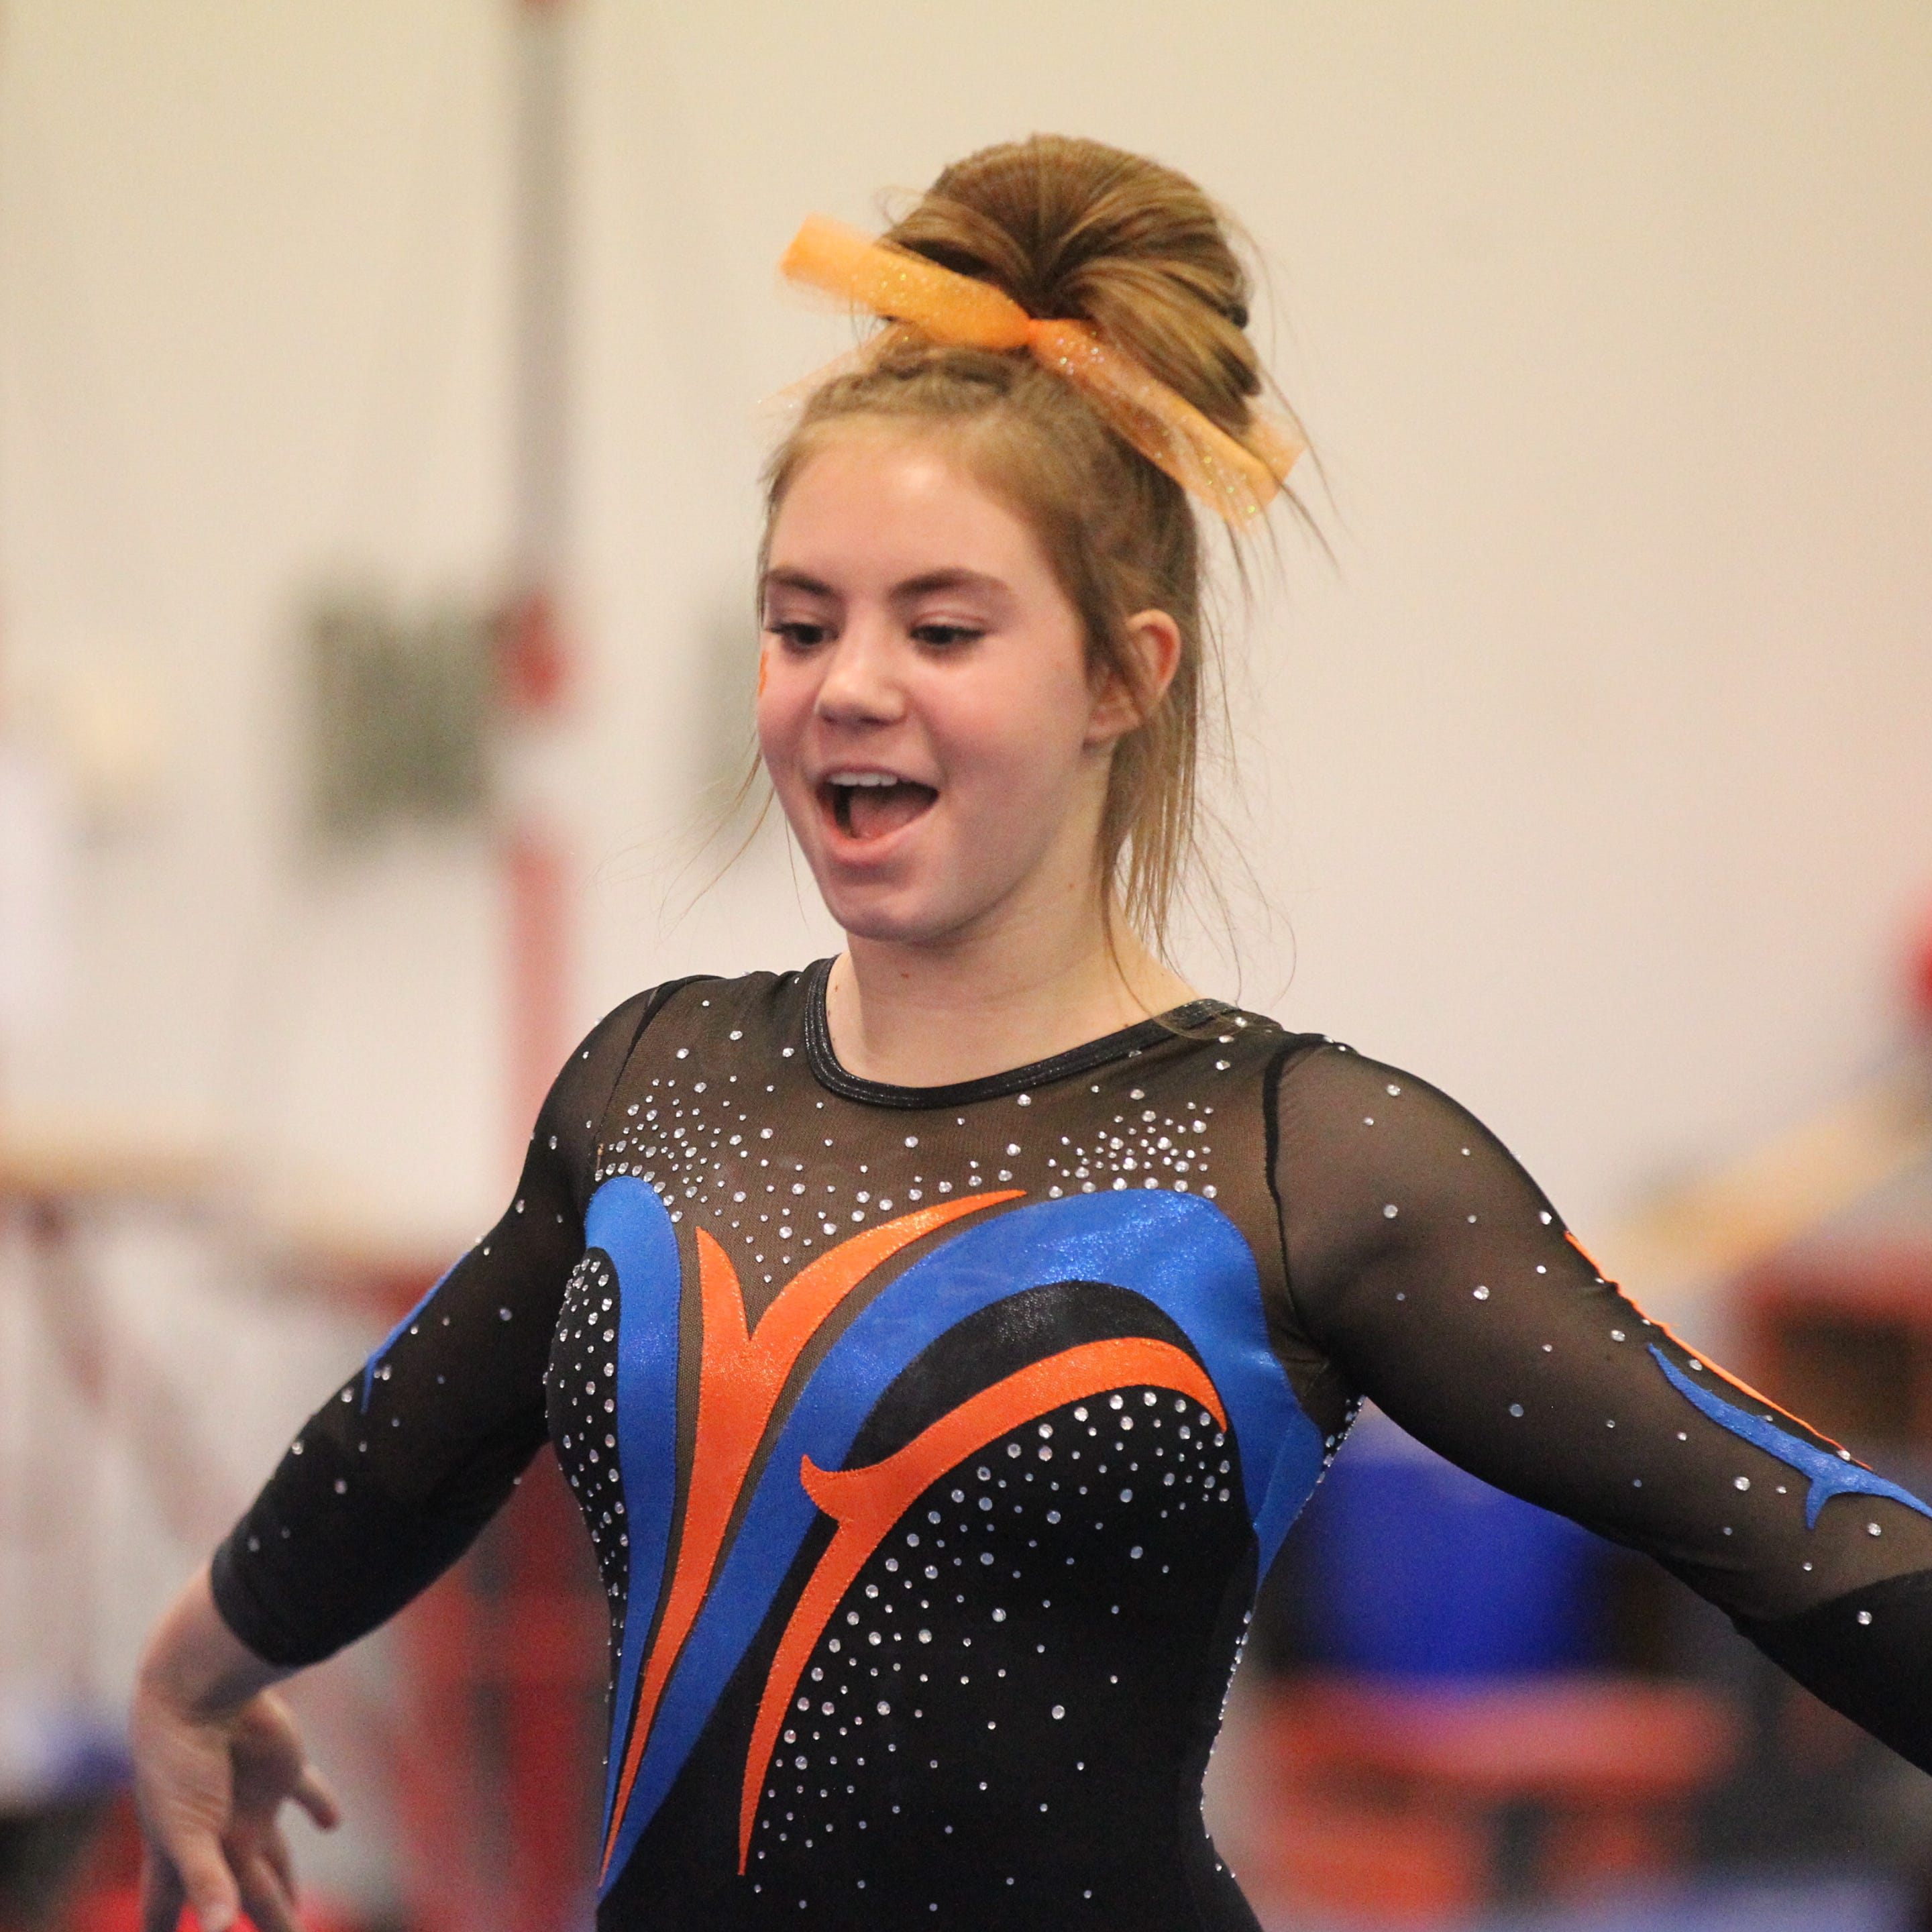 San Angelo Central girls win 18th straight regional gymnastics title